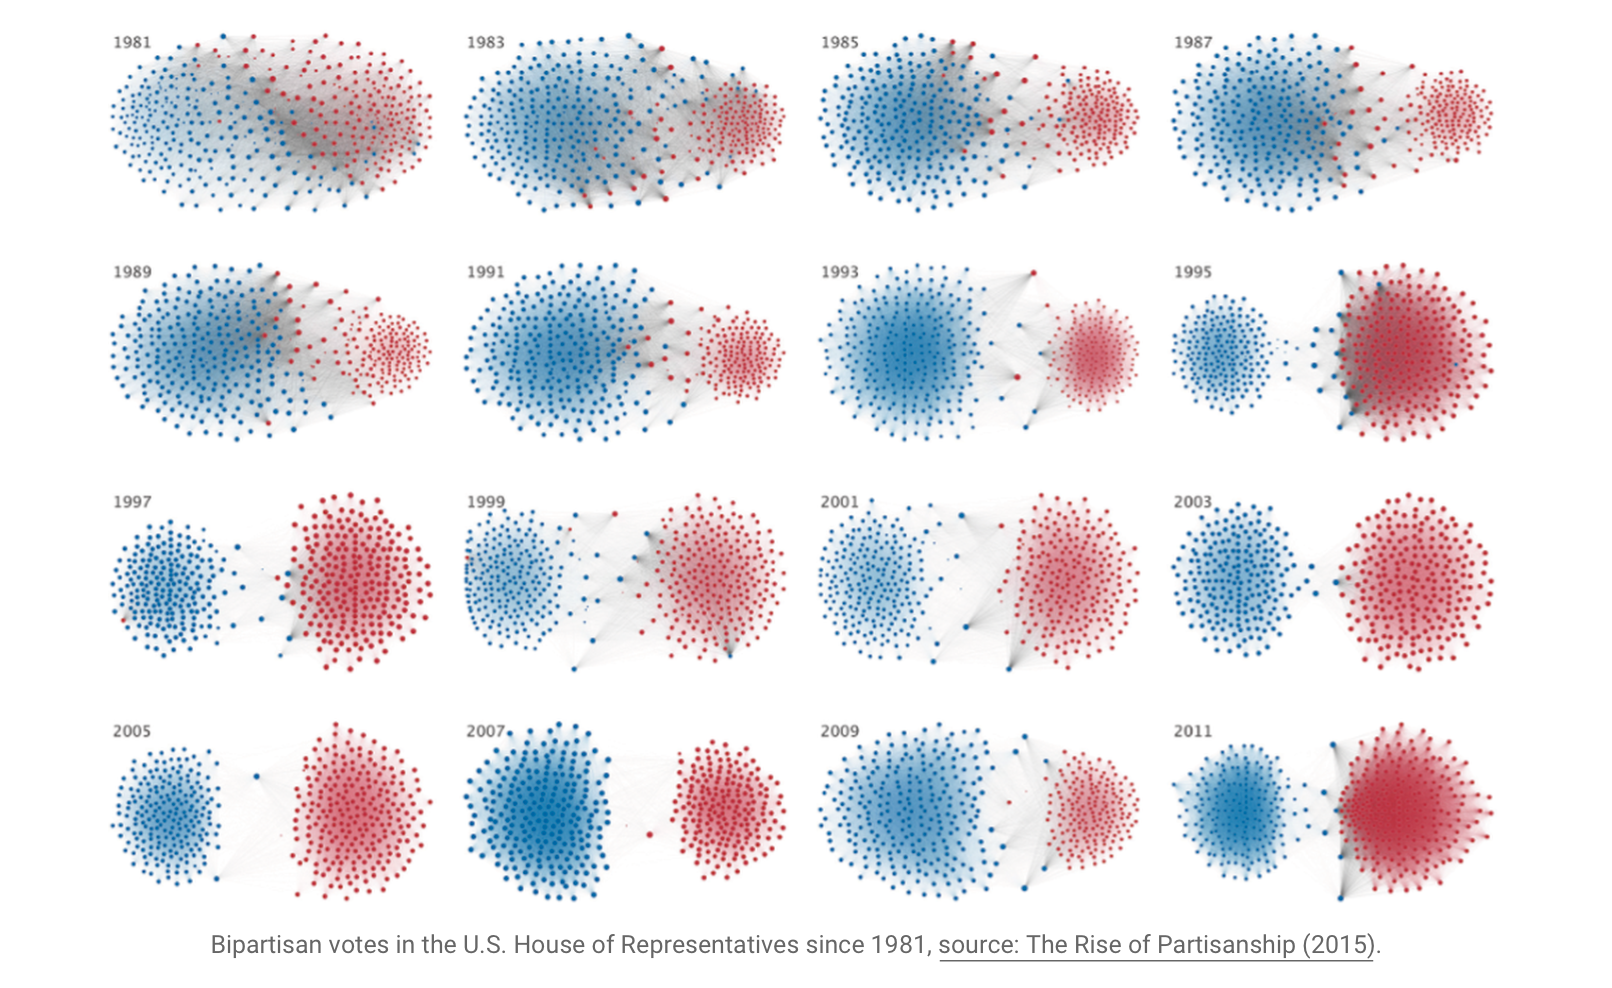 Bipartisan votes in the U.S. House of Representatives since 1981, source: The Rise of Partisanship (2015).